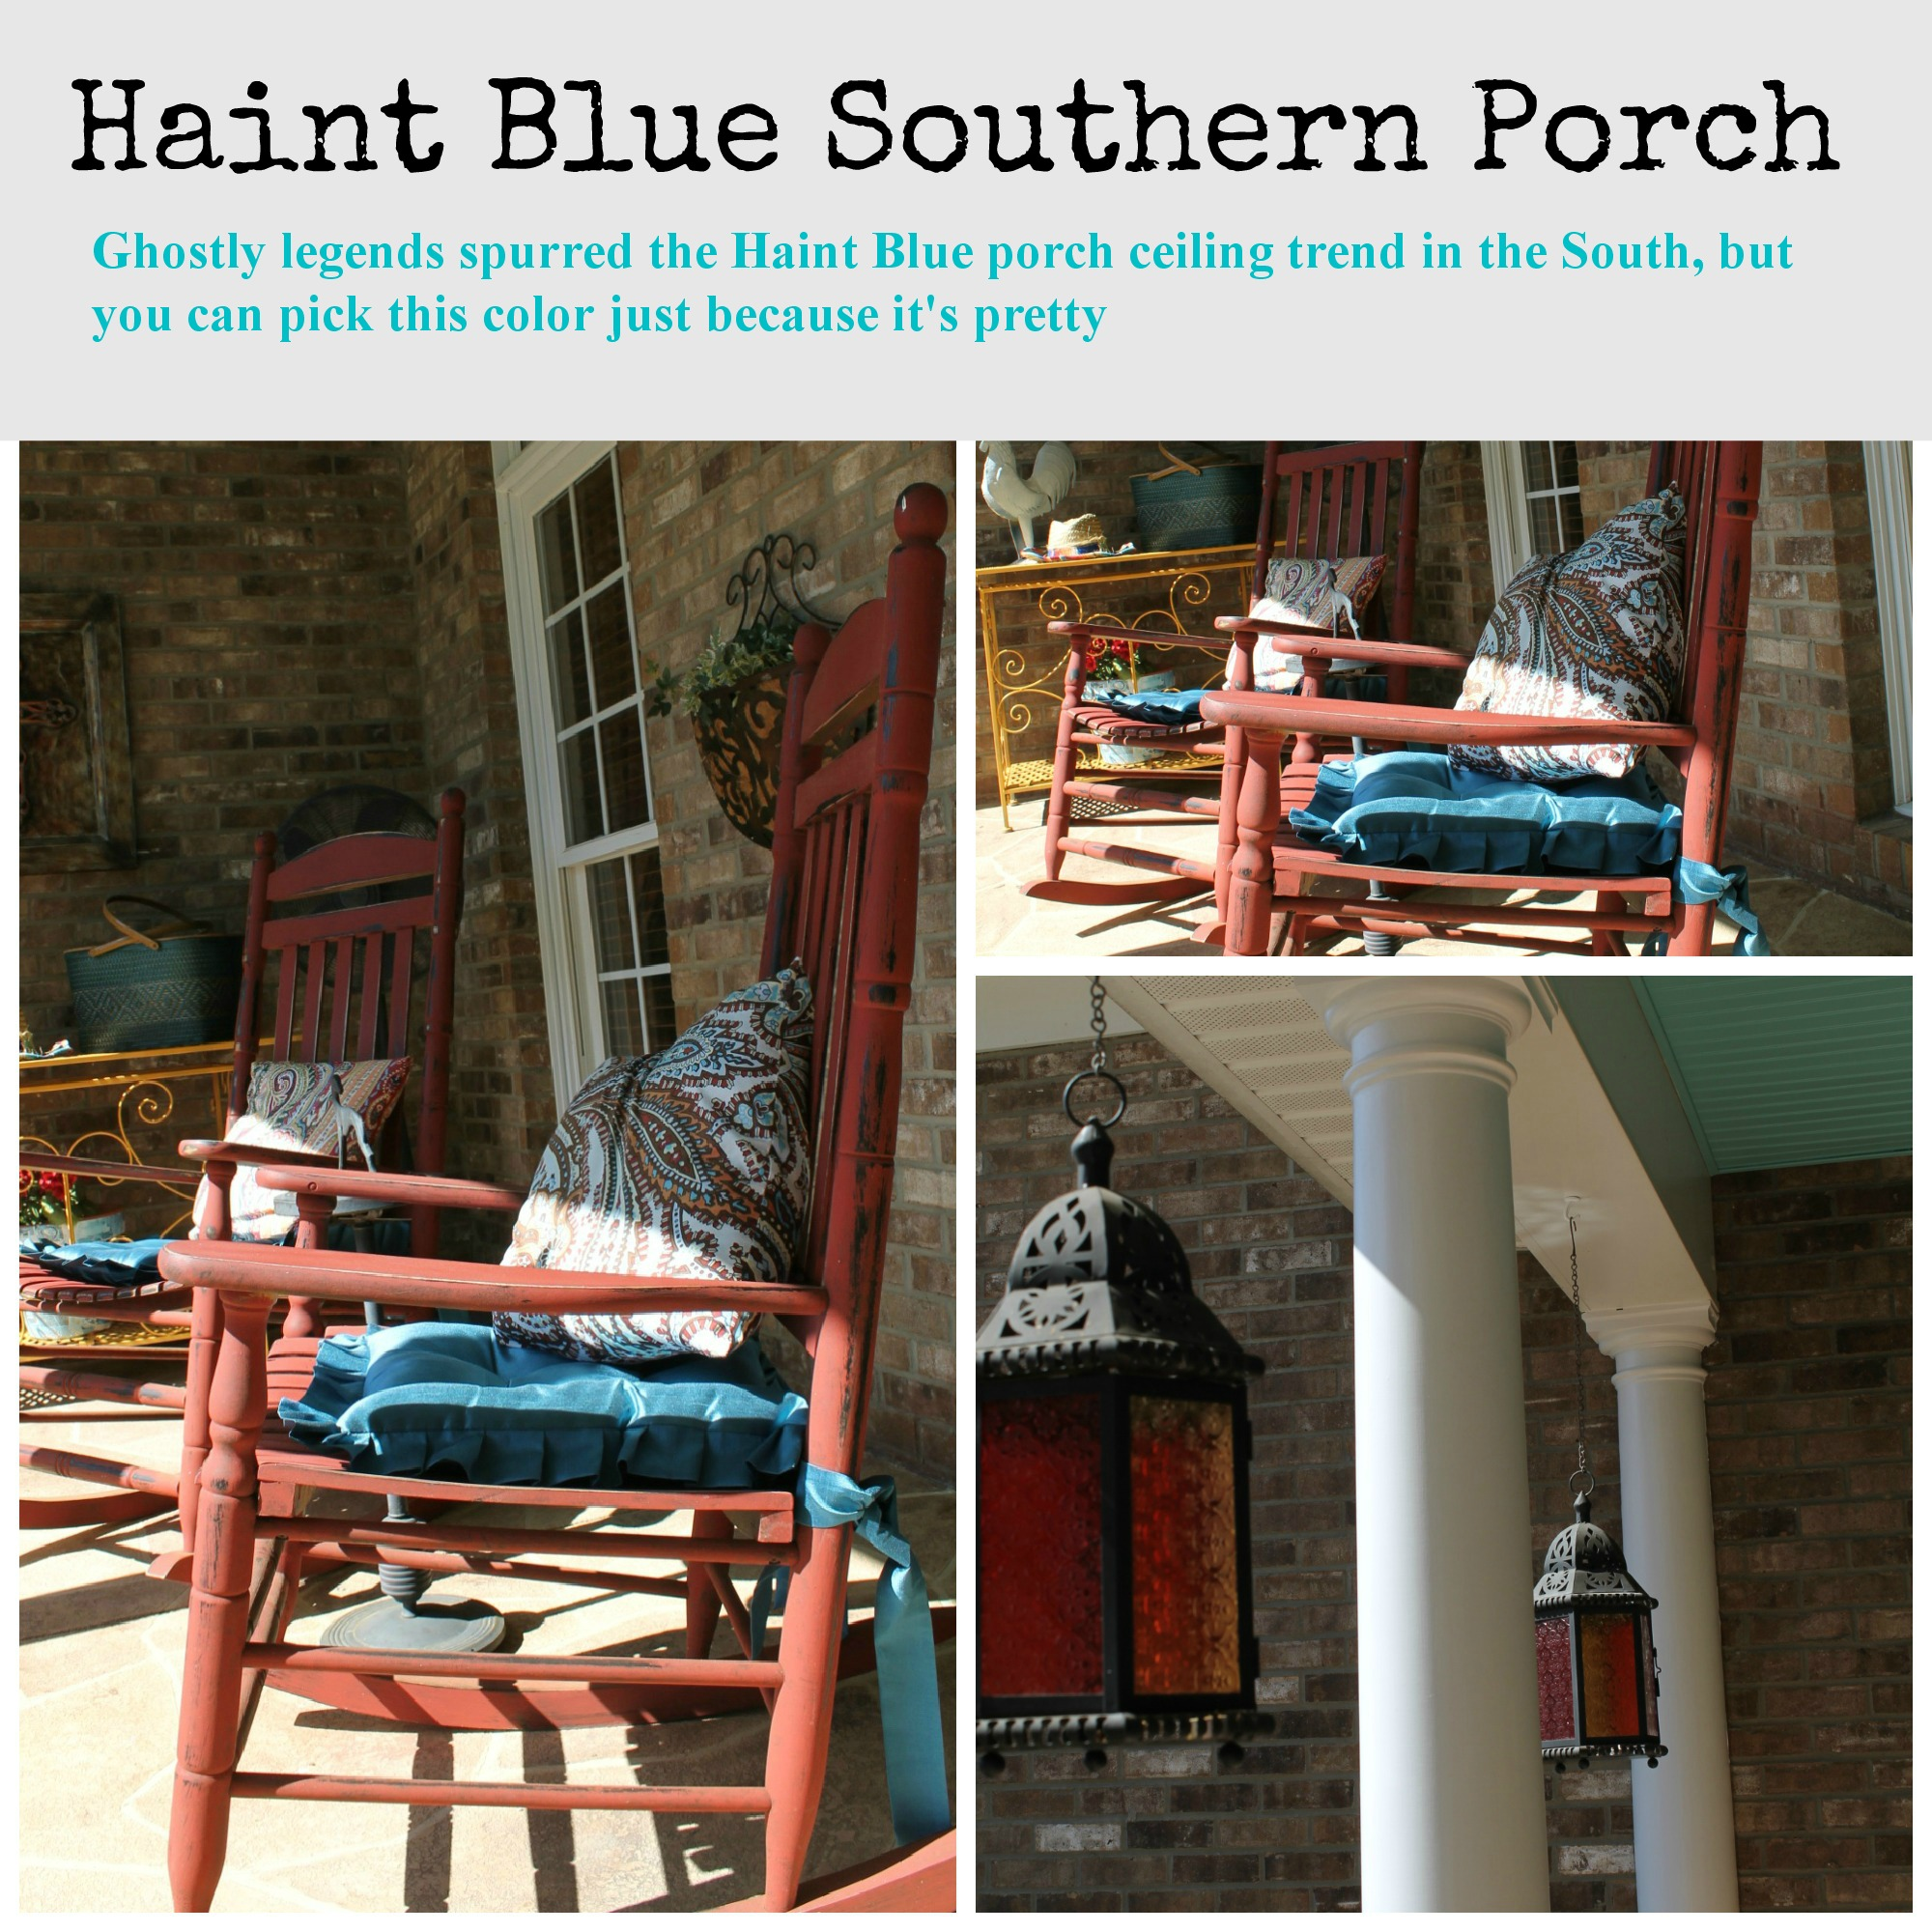 Southern porch painted Haint blue - Debbiedoos